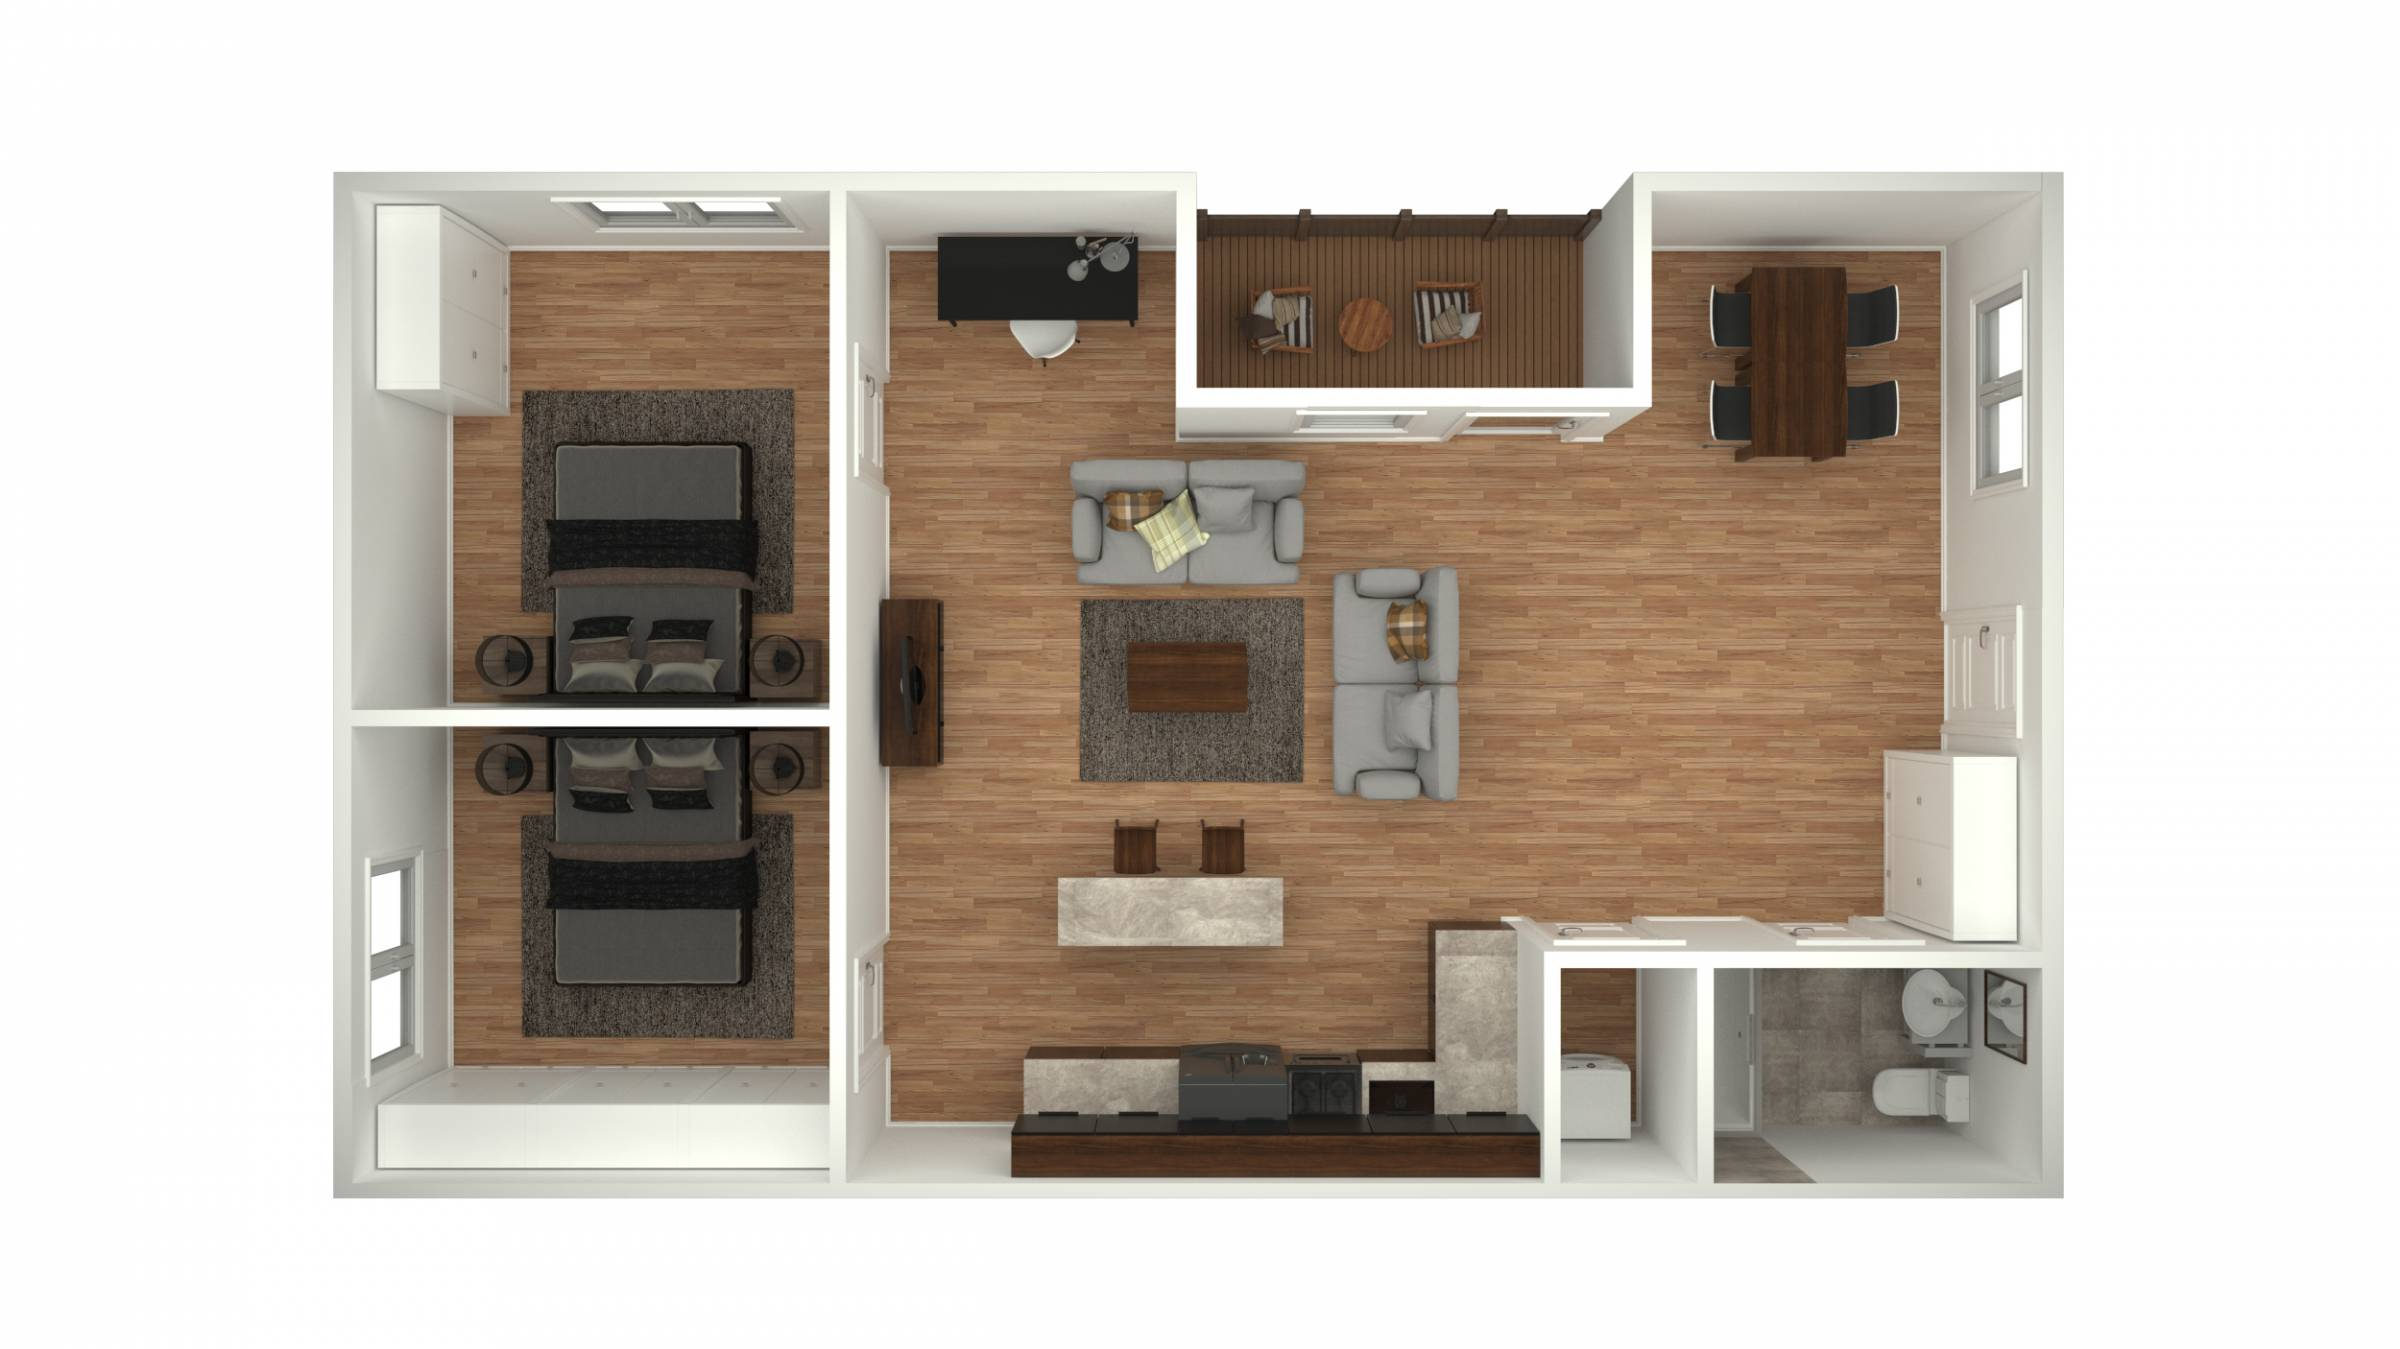 Residential 2 Bedroom - 3 40s - 2 Bed 1 Bath | Item 2 on 26x34 house plans, americana house plans, ranch house floor plans, 1940s house plans, 1960s house plans, 20's house plans, seventies house plans, 90's house plans, 26 x 40 house plans, cape cod colonial house plans, 60's house plans, 1840s house plans, 1920's house plans, 1880s house plans, 50's house plans, 1948 house plans, latin house plans, folk house plans, 1800's house plans,